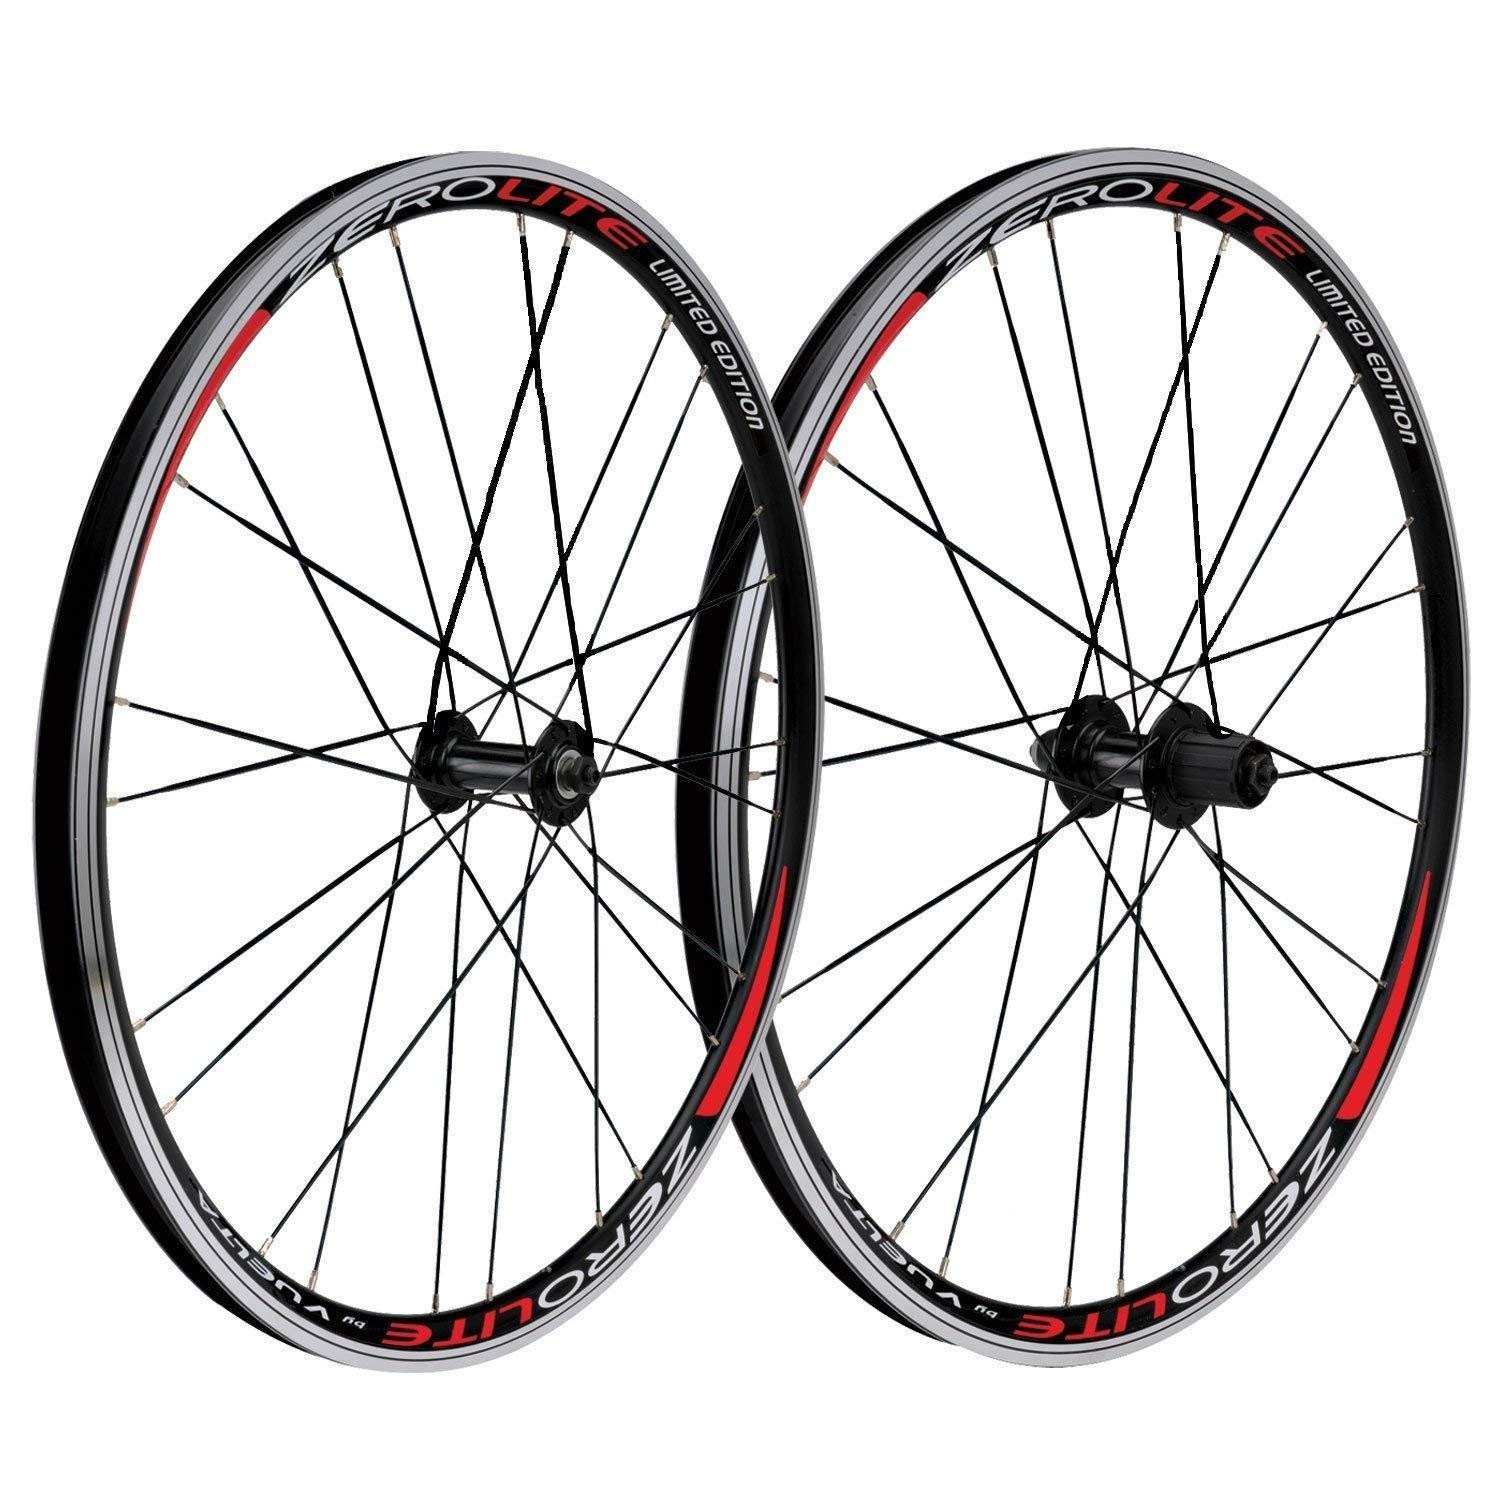 Vuelta Zerolite MTB Limited Edition 26'' Hand Built MTB Wheelset by Vuelta